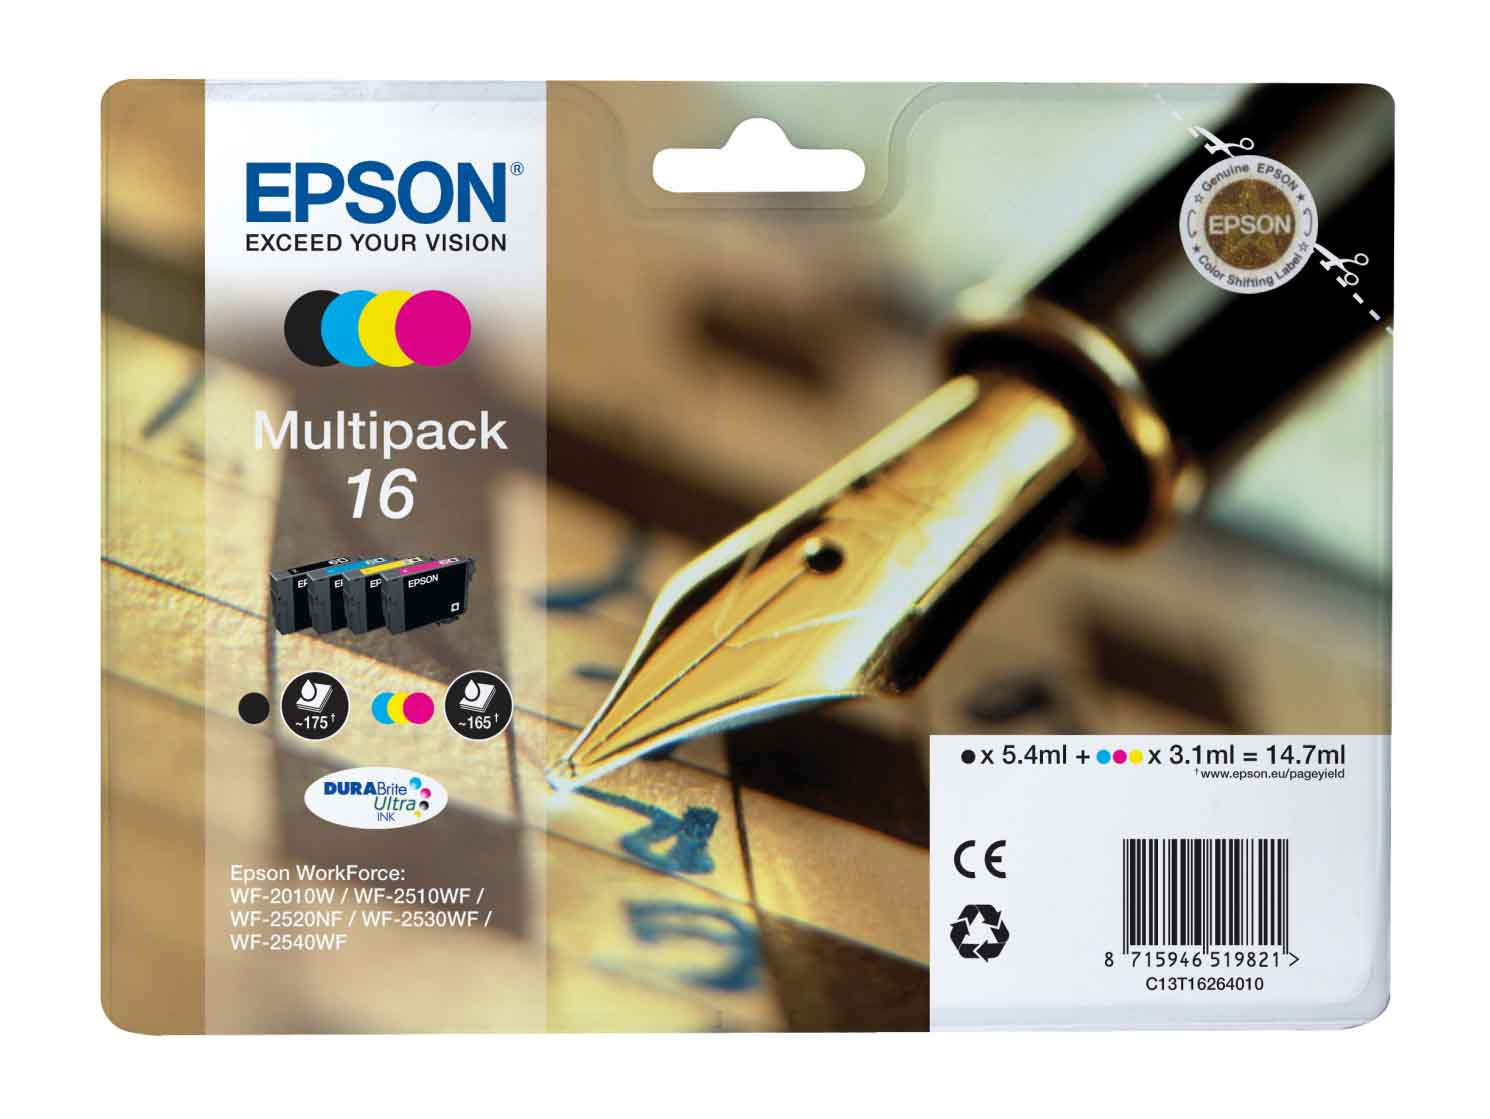 Genuine 4 Colour Epson 16 Ink Cartridge Multipack - (T1626 contains T1621/ T1622/ T1623/ T1624 Pen and Crossword Inkjet Printer Cartridges)